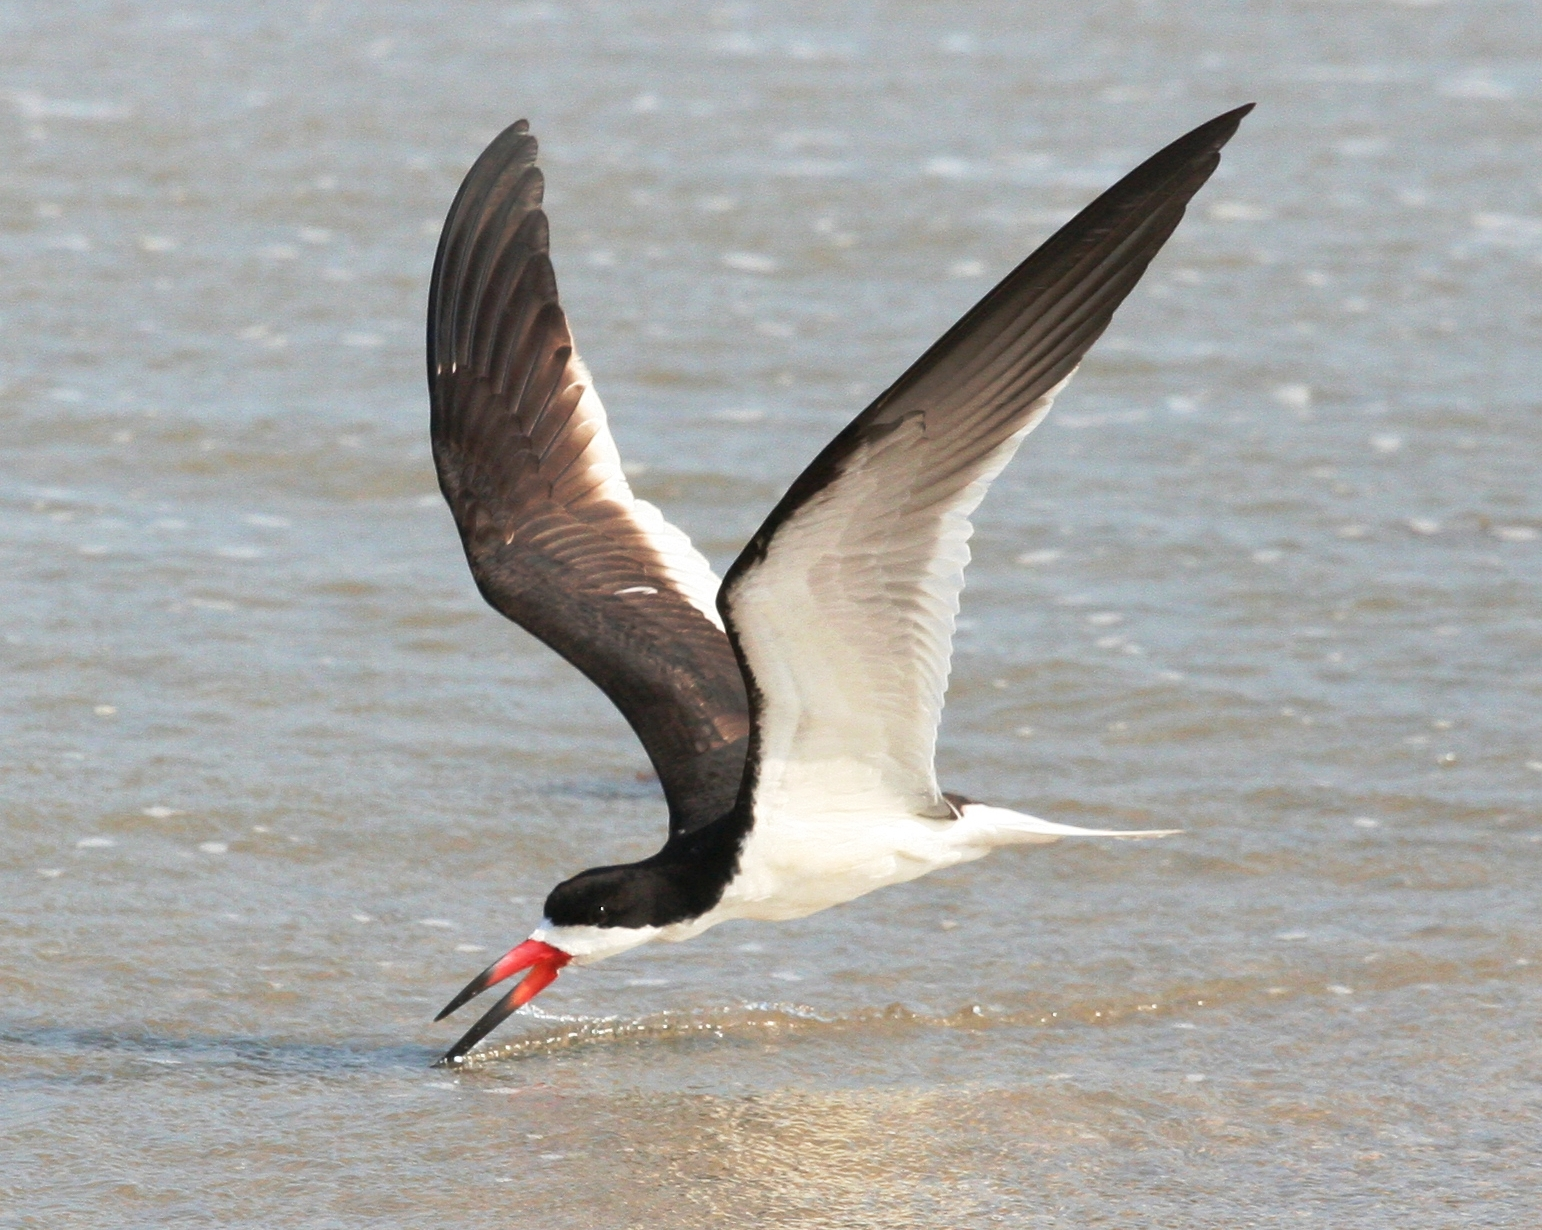 Black skimmer gliding for fish